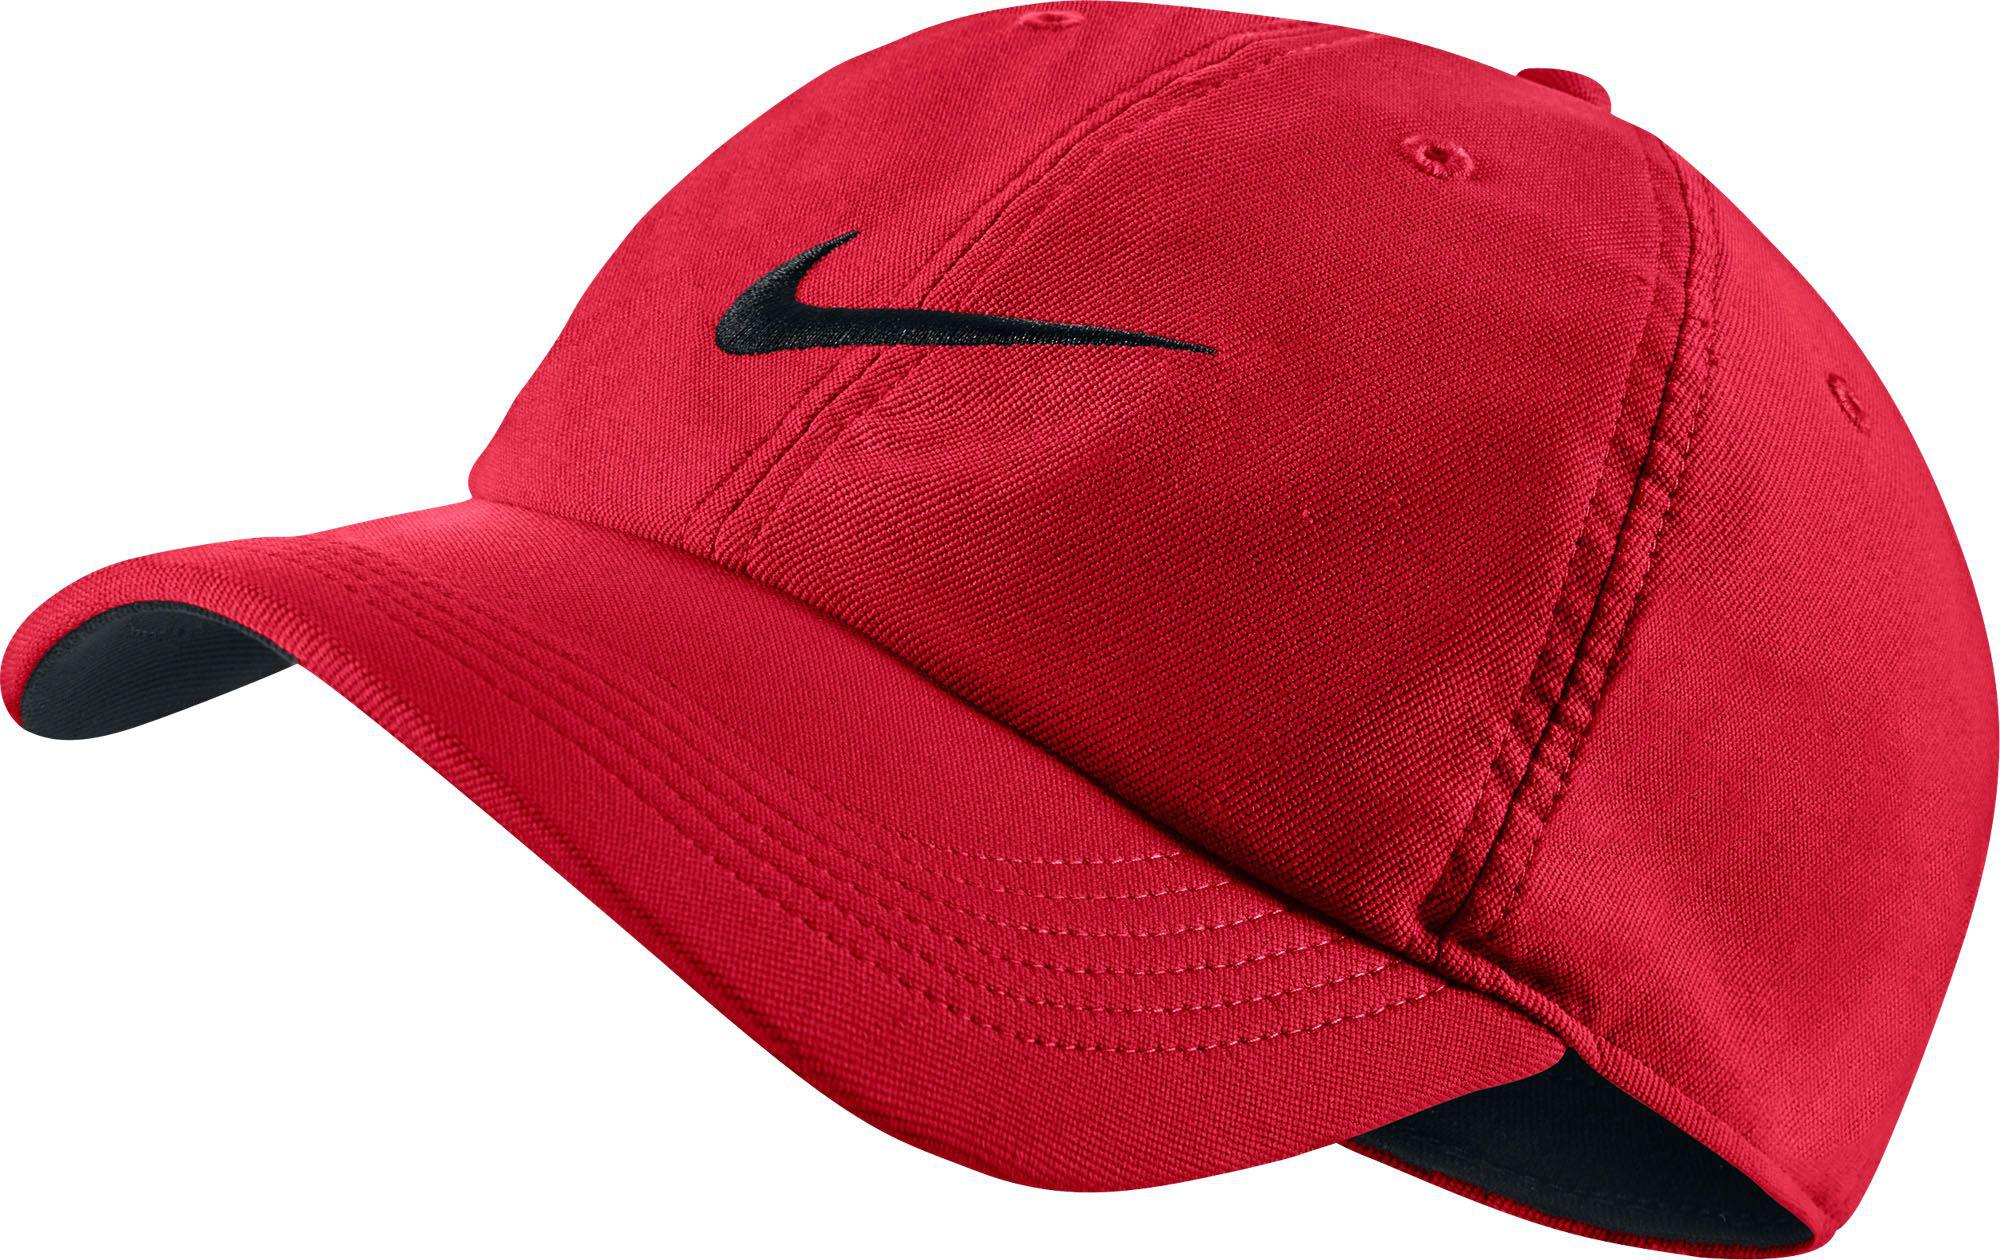 c685562fcf6 Lyst - Nike Twill H86 Adjustable Hat in Red for Men